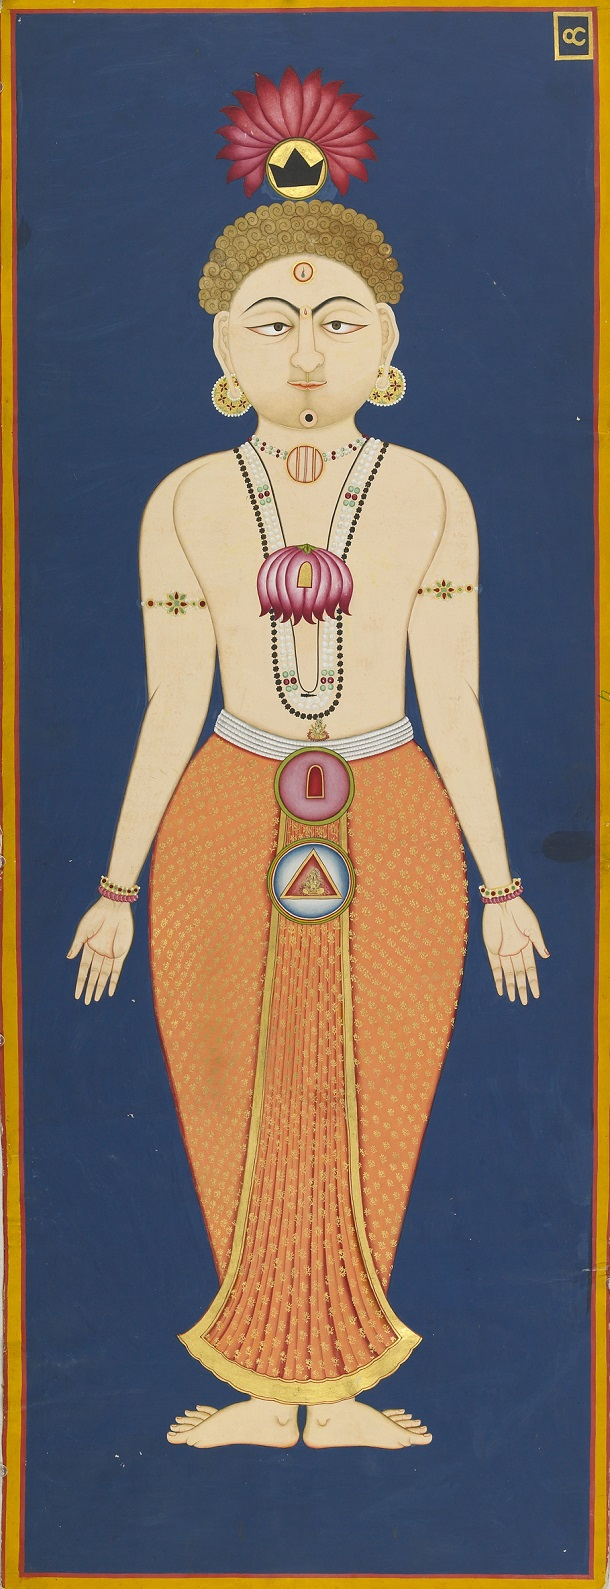 The Chakras of the Subtle Body(folio 4 from the Siddha Siddhanta Paddhati Jodhpur, Rajasthan, 1824)